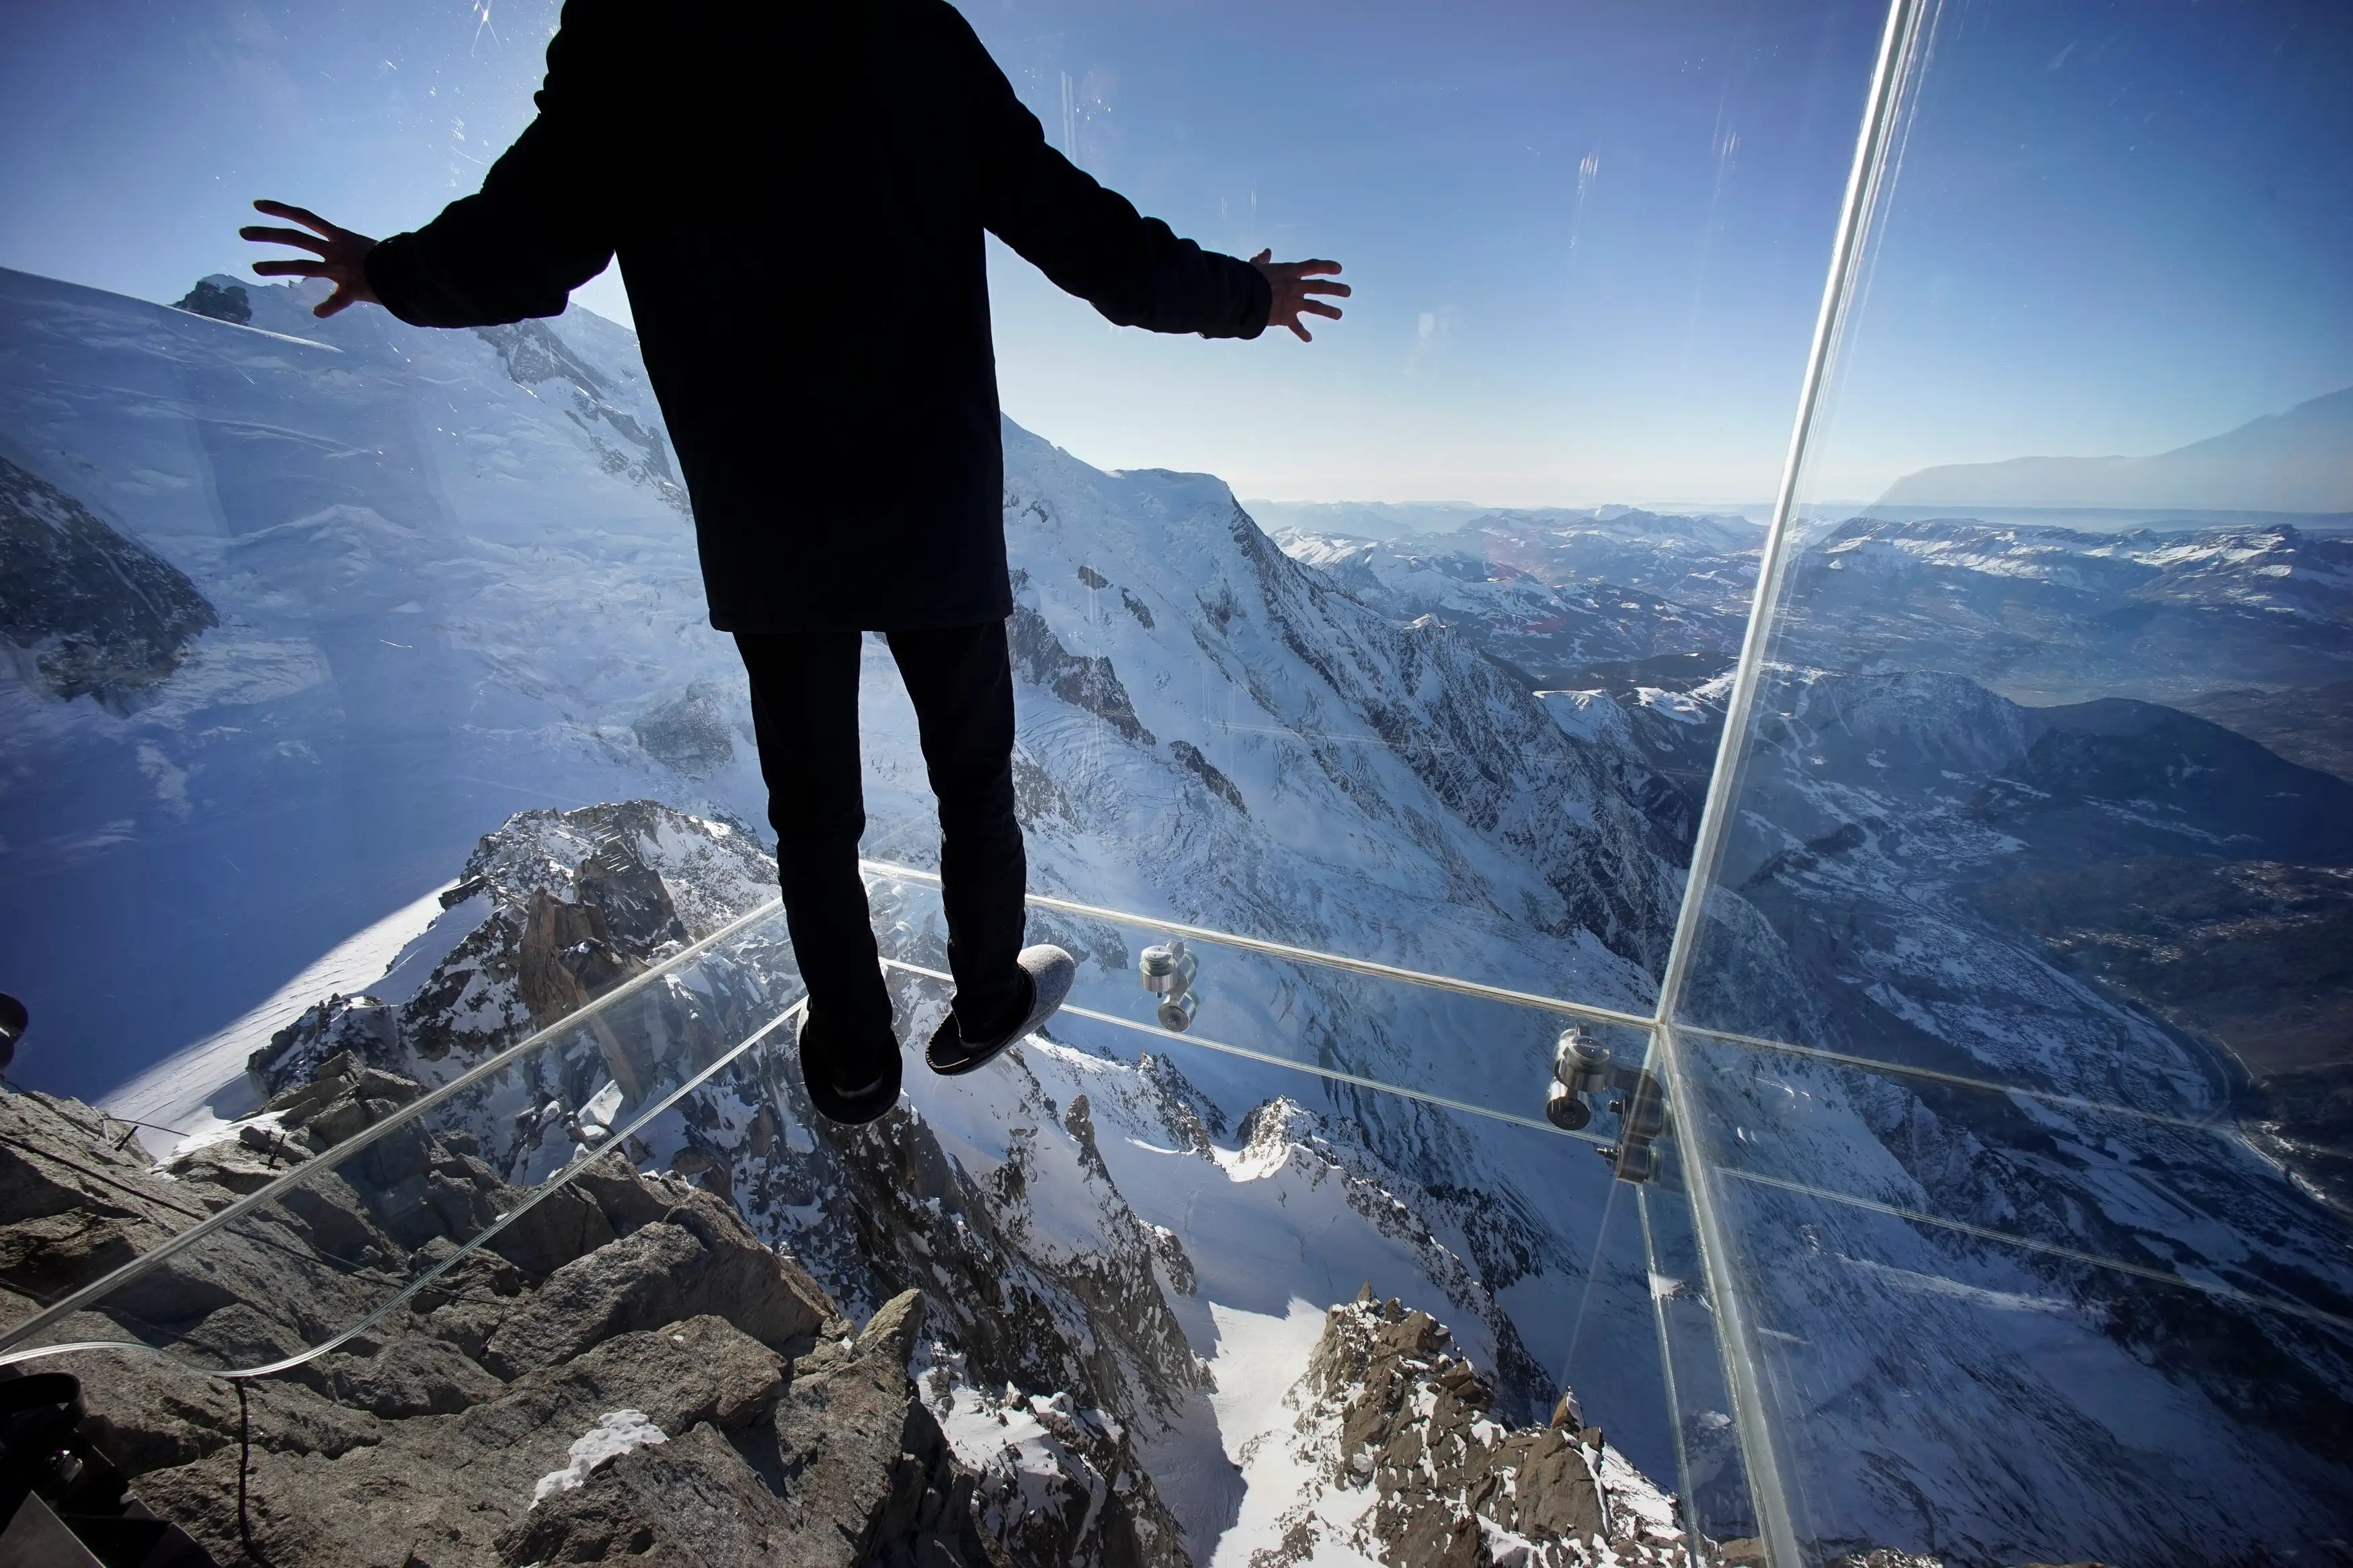 A journalist, wearing slippers to protect the glass floor, stands in the 'Step into the Void' installation during a press visit at the Aiguille du Midi mountain peak above Chamonix, in the French Alps.